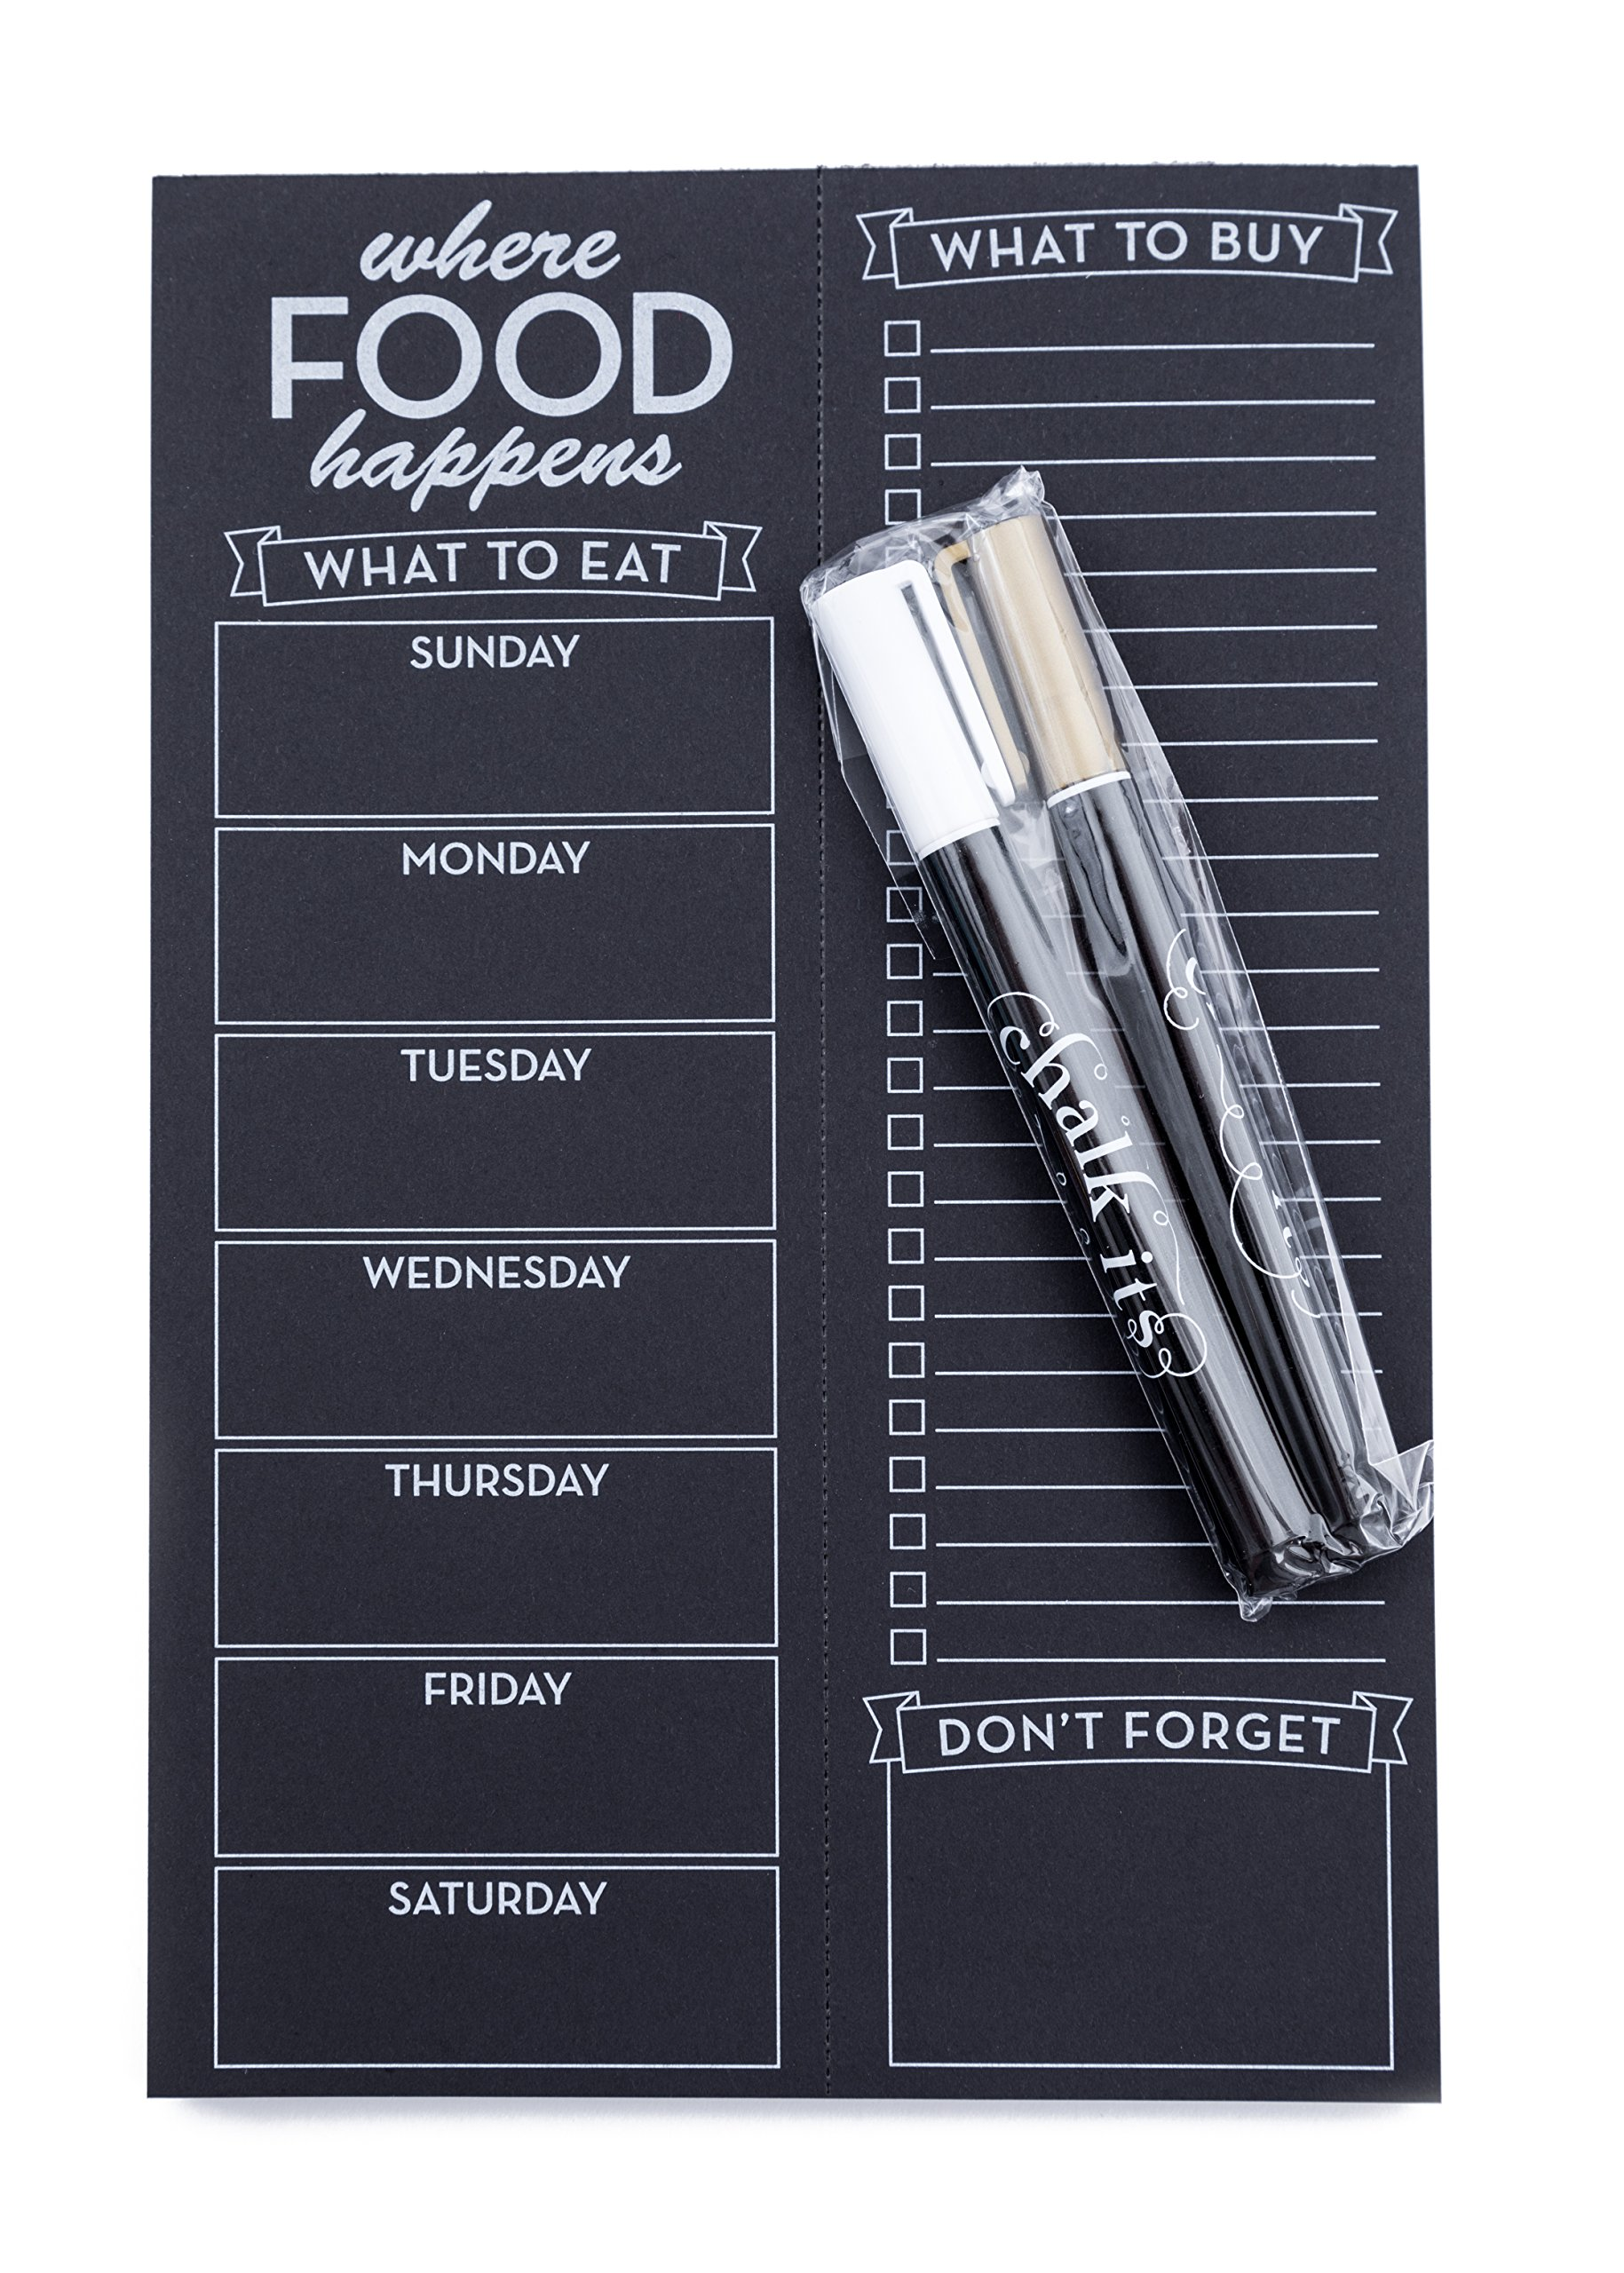 Chalk-Its Weekly Chalkboard Menu & Grocery List Planner w/White and Gold Liquid Chalk Markers, Perforated Black Paper Note Pad, Refrigerator Magnet, Gift Package, Bistro Design of Where Food Happens